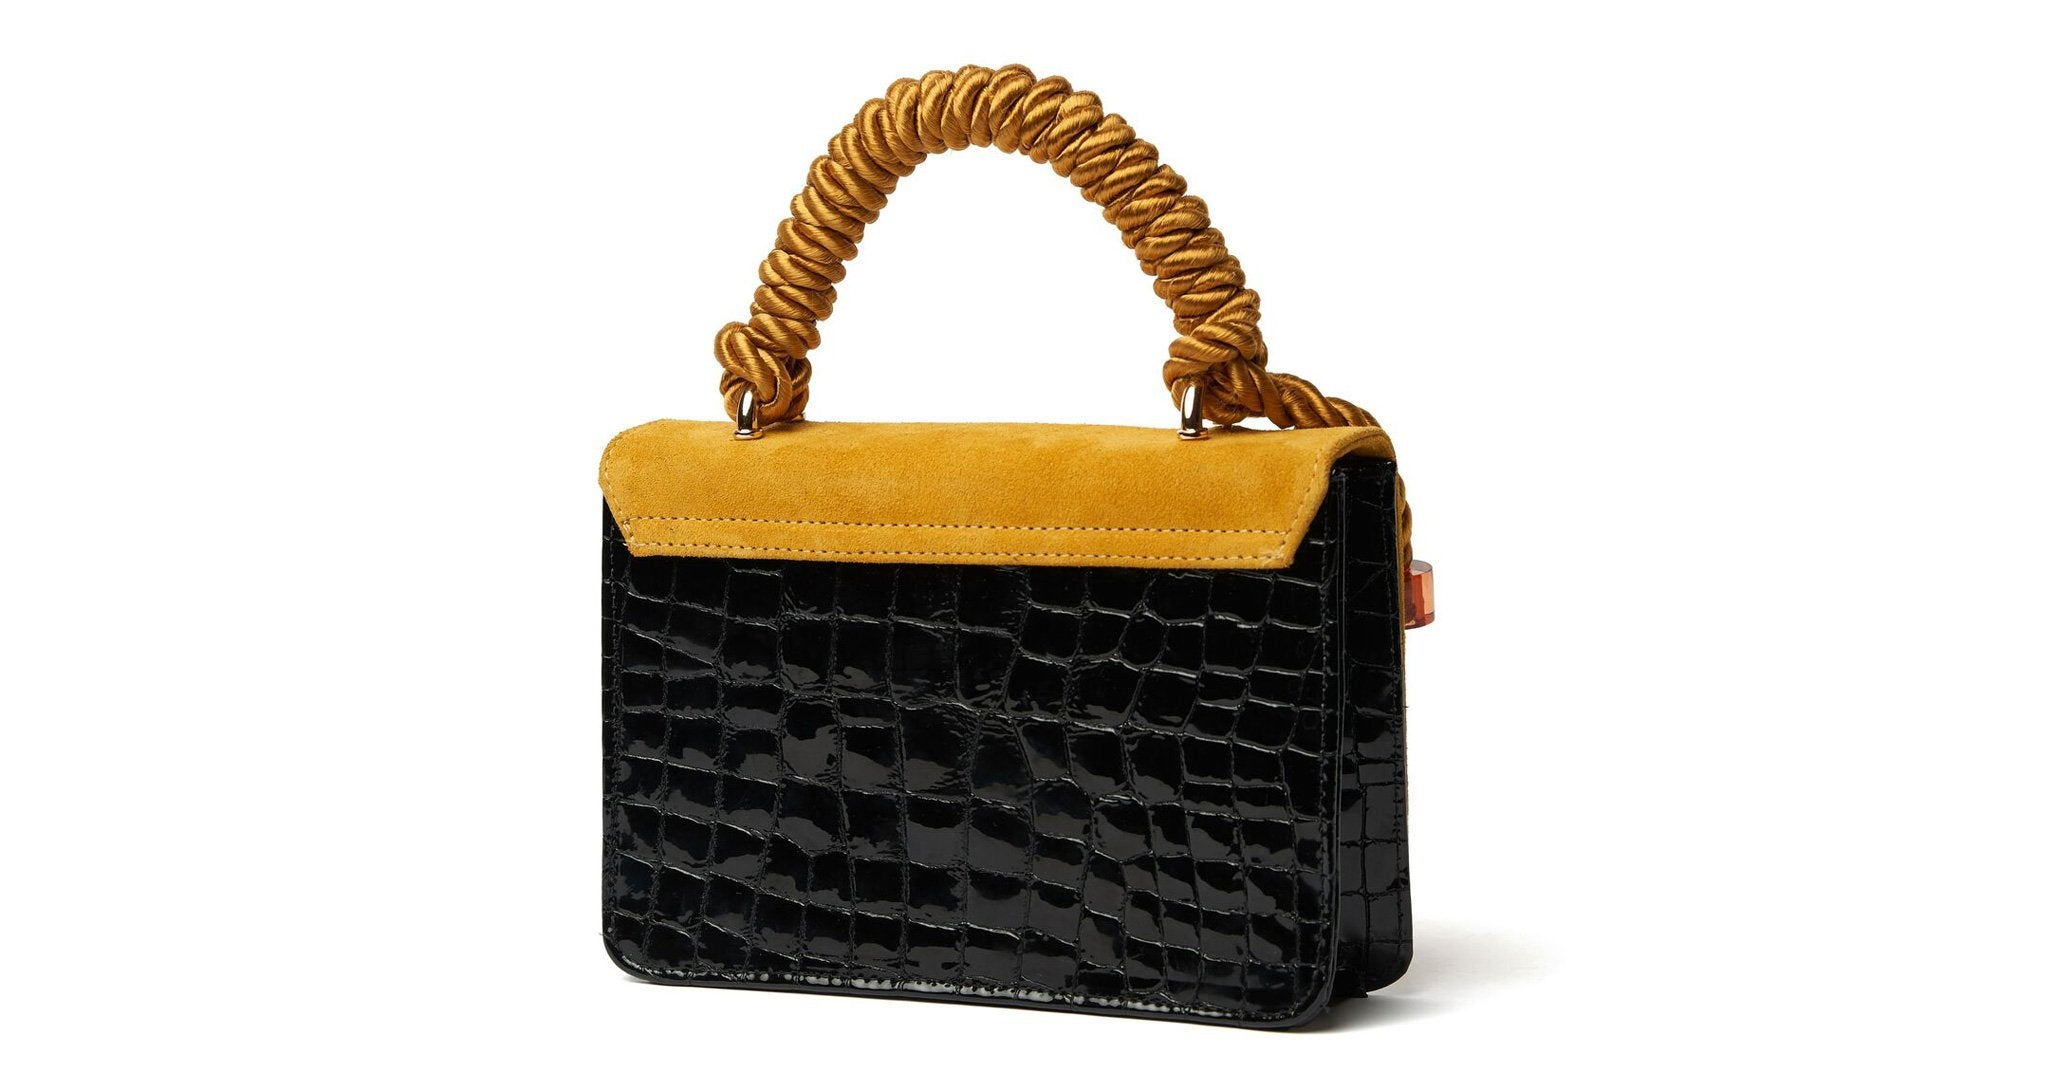 Lizzie Fortunato Beatrice Purse - Crystal Croc